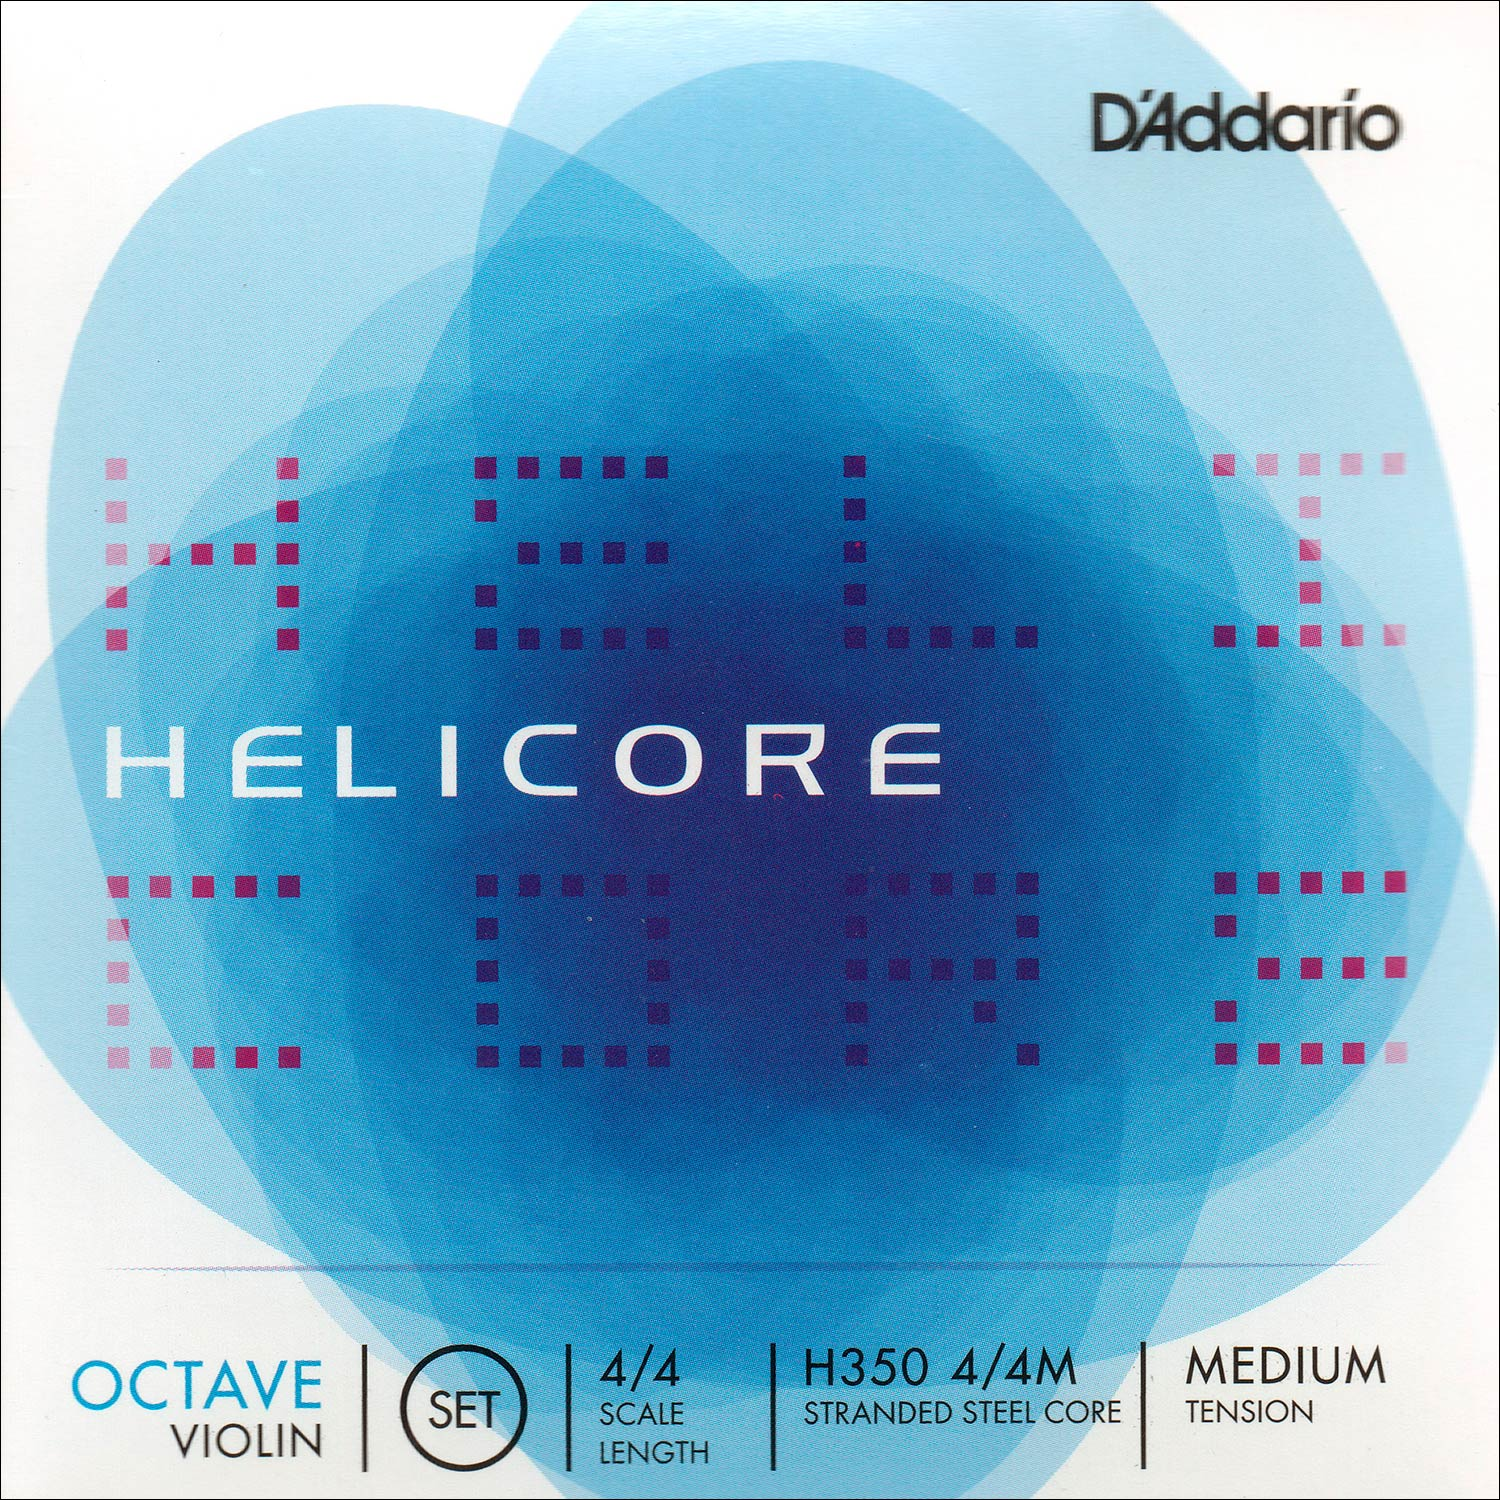 D'Addario Helicore Octave 4/4 Violin String Set - Medium Gauge - Ball End Aluminum Wound Steel E